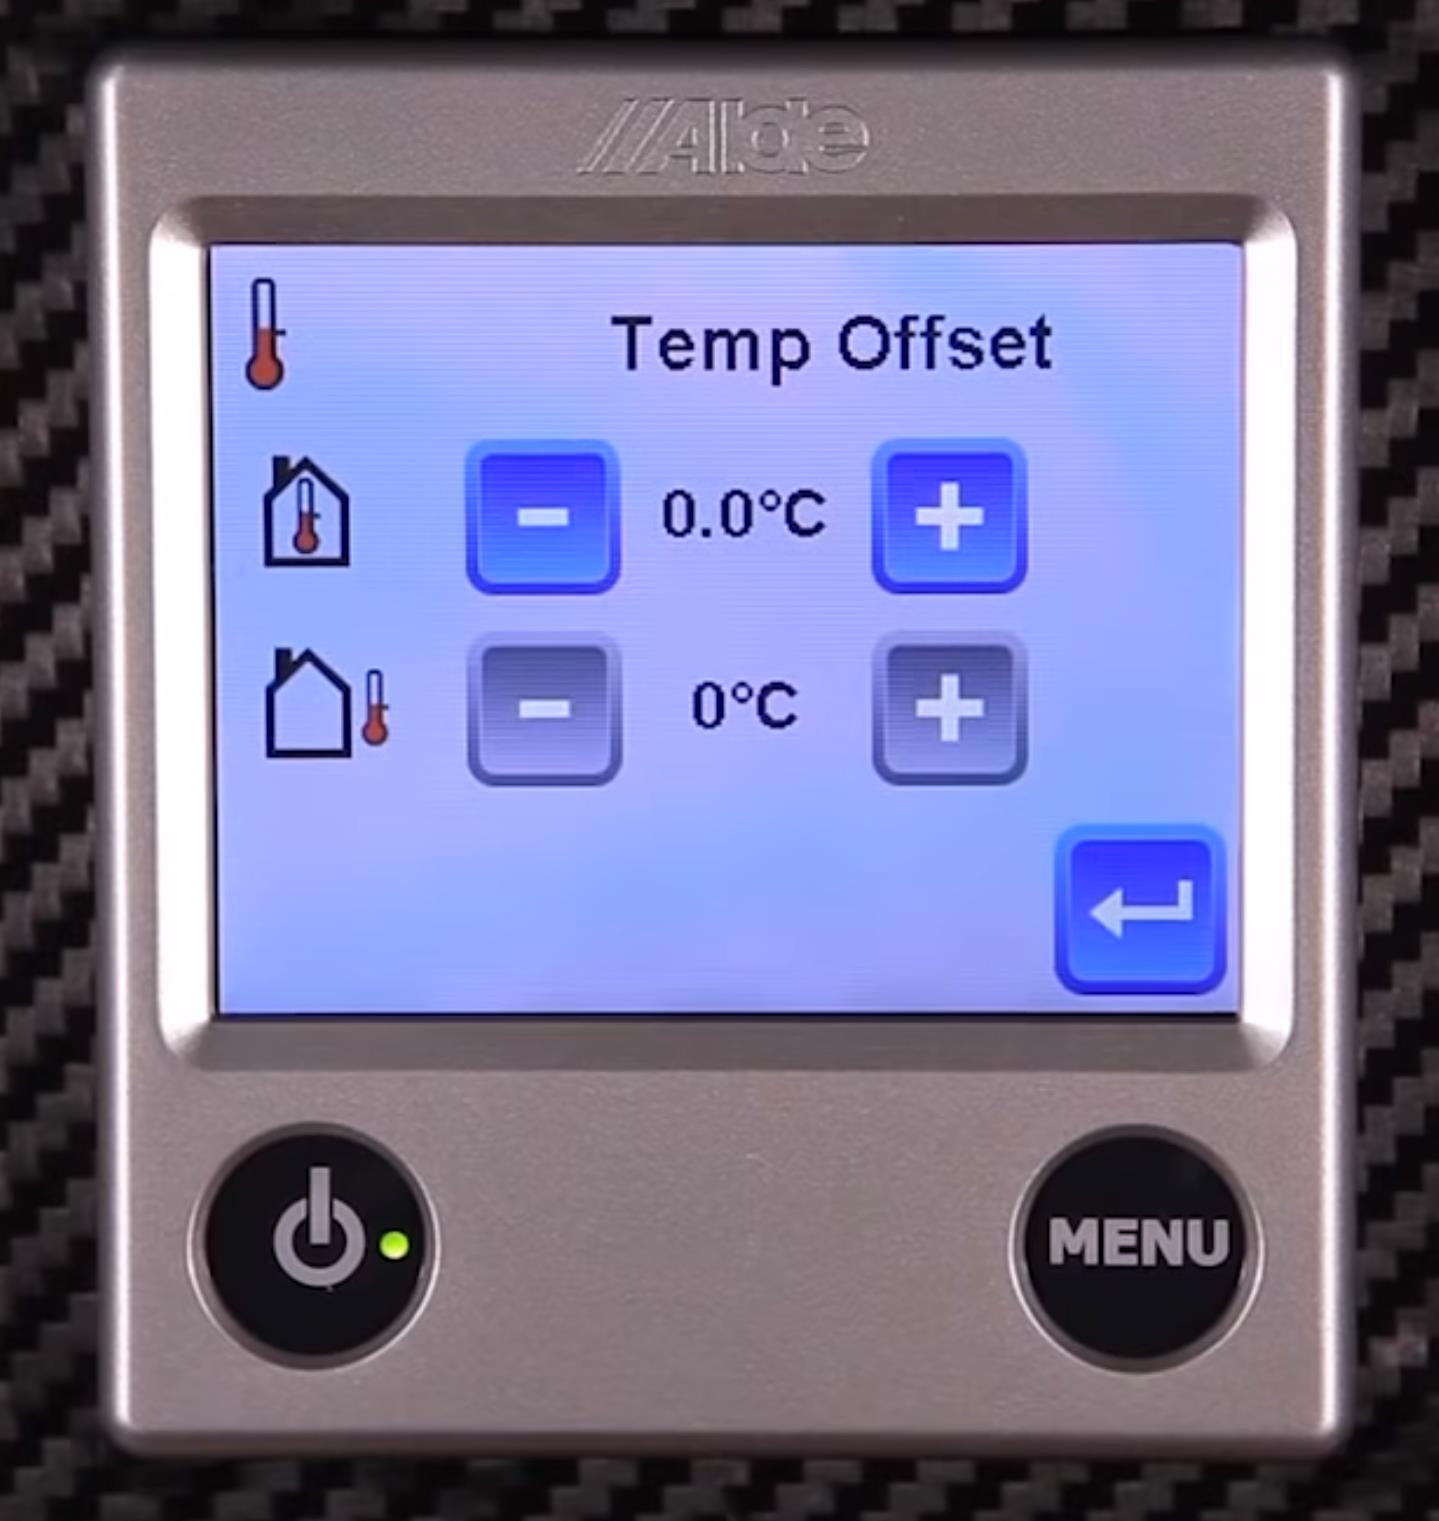 Alde 3020 Control panel on offset temperature screen.